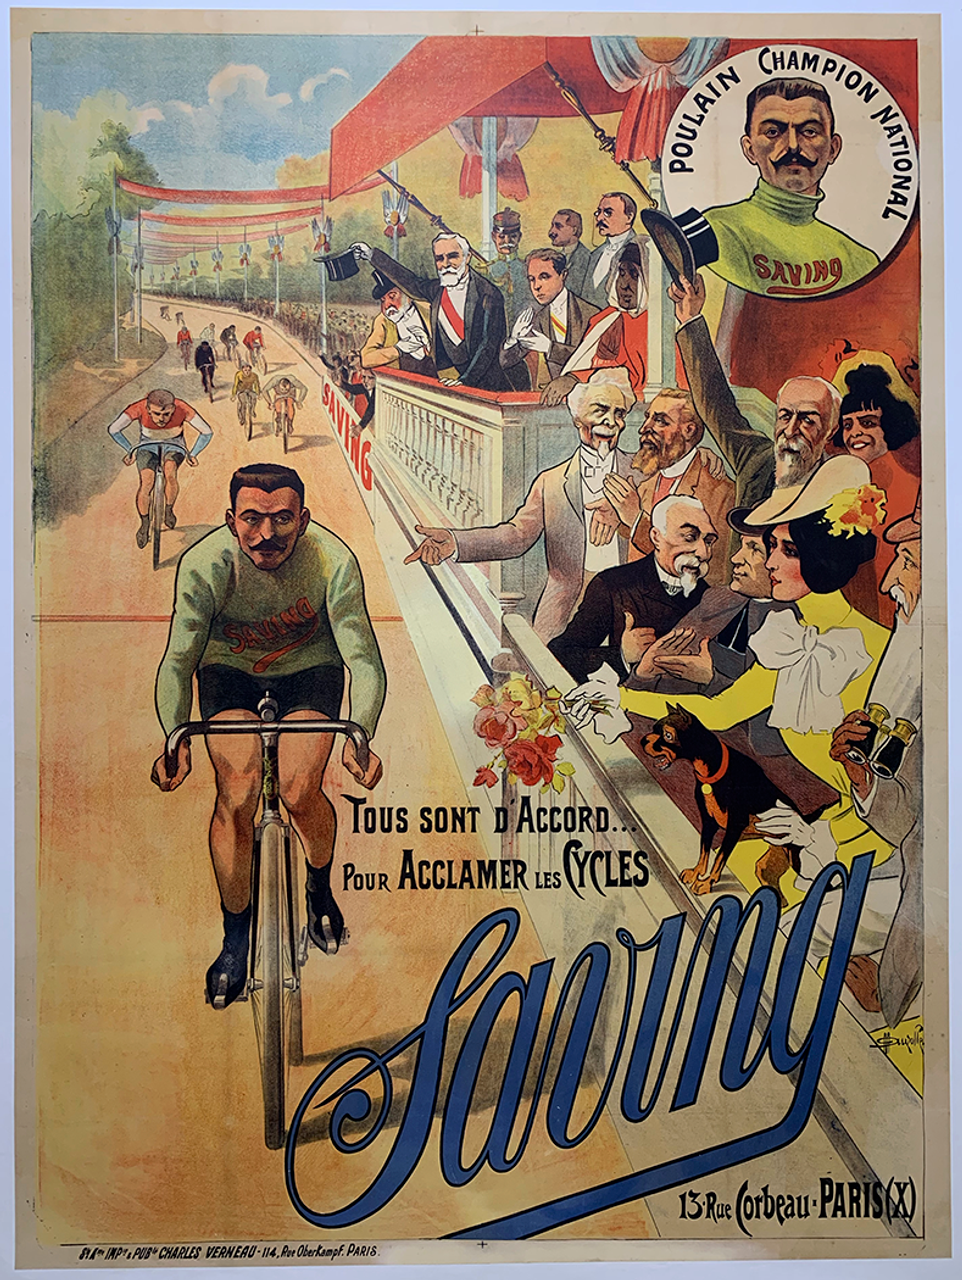 Saving Original Vintage  Bicycle Poster by Auzolle